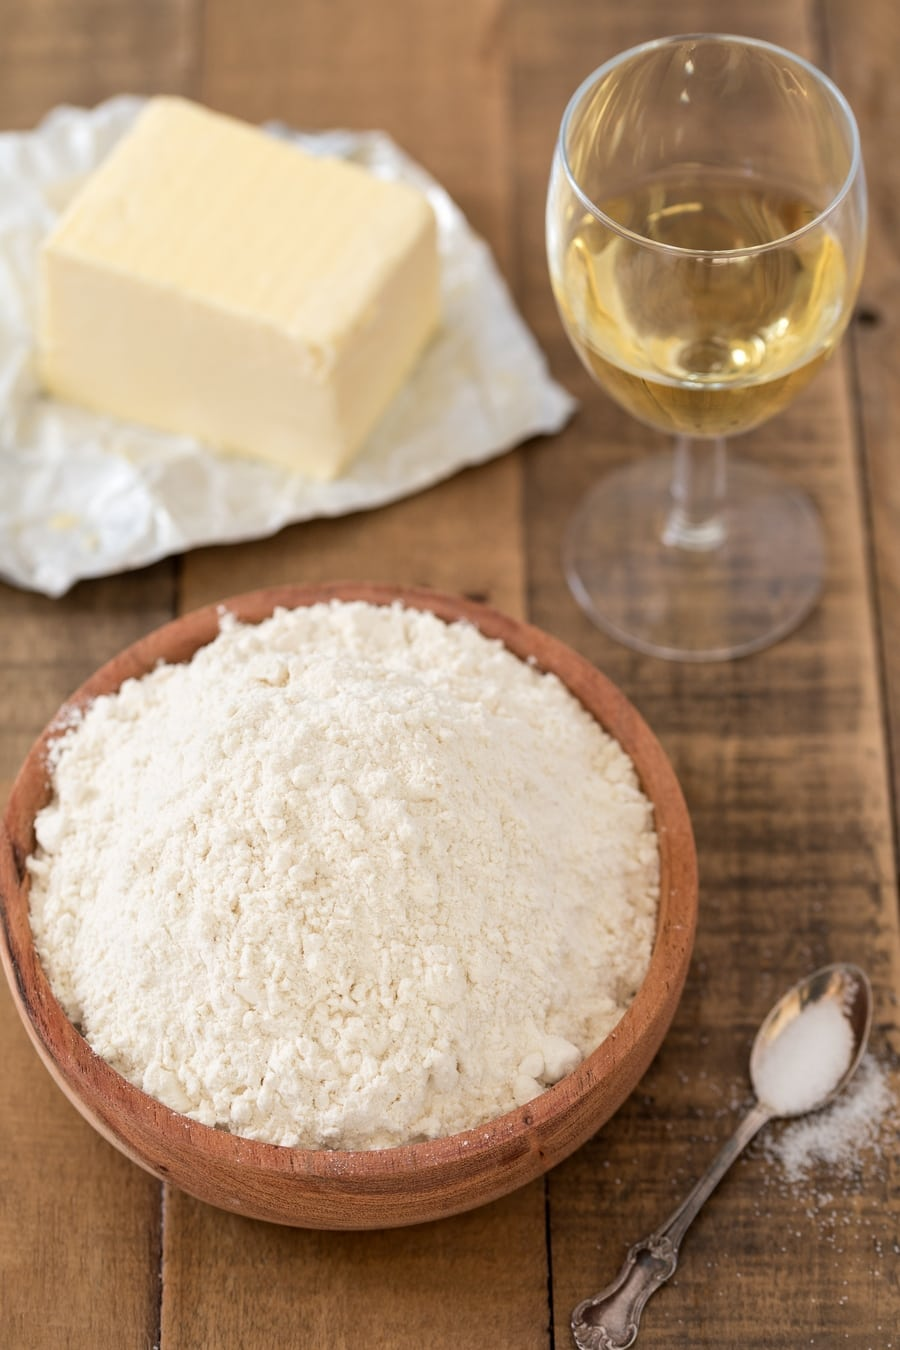 Bowl of flour, white wine glass and butter.